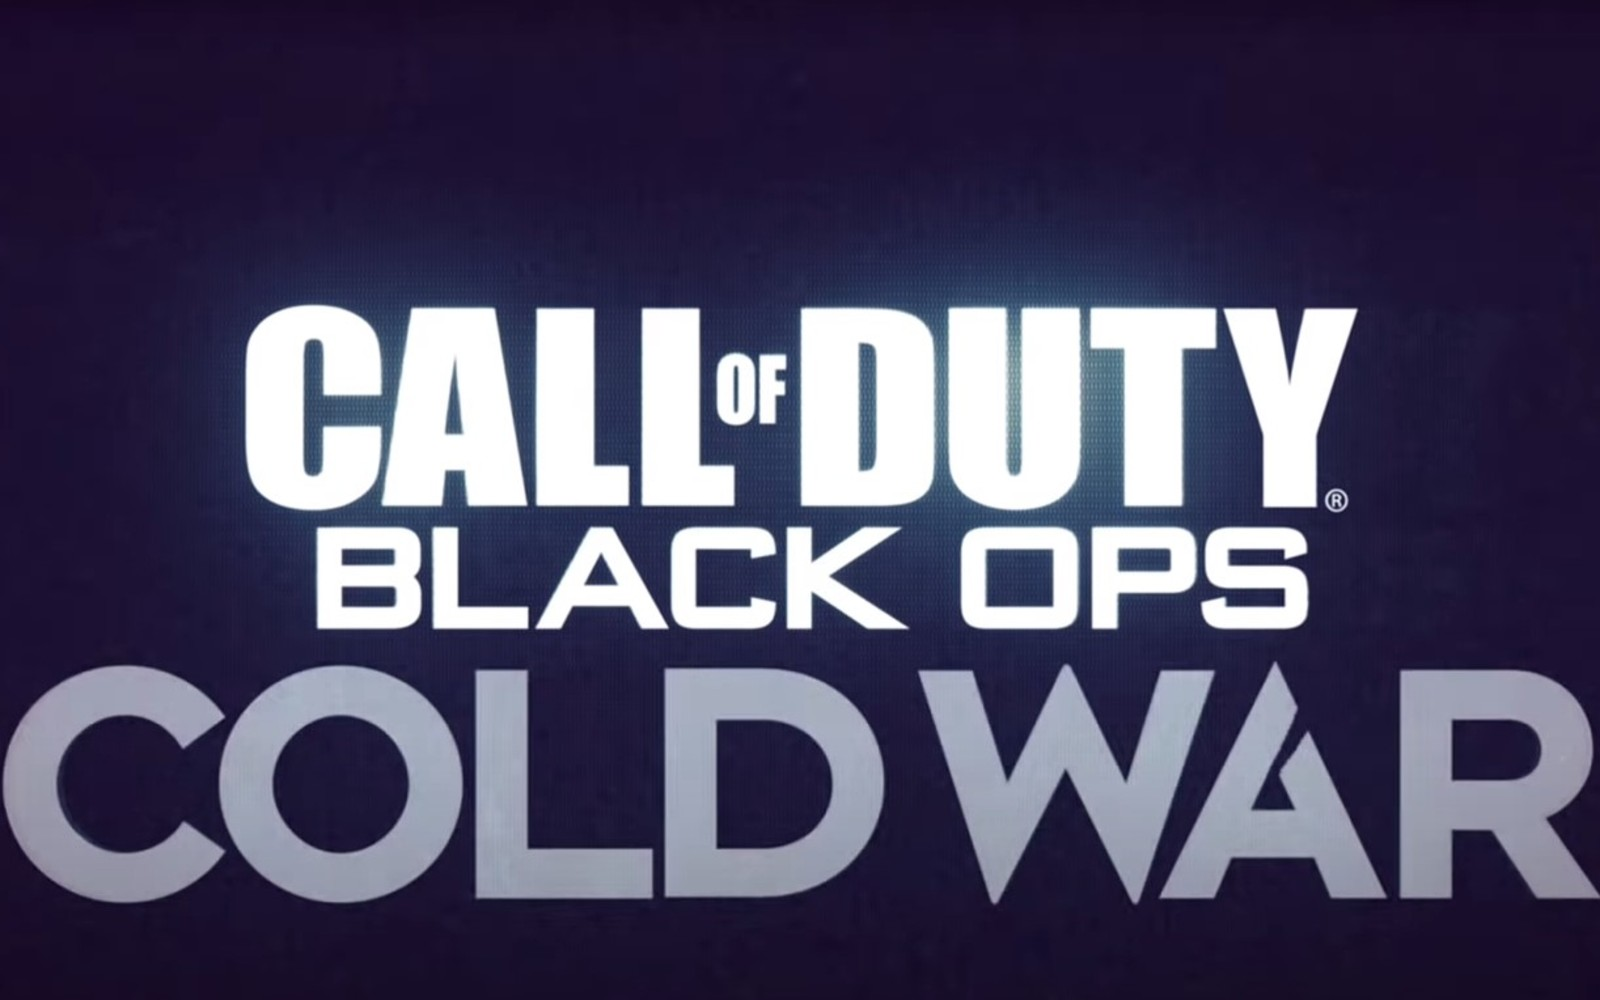 Black Ops Cold War Is The Next Call Of Duty Game Engadget